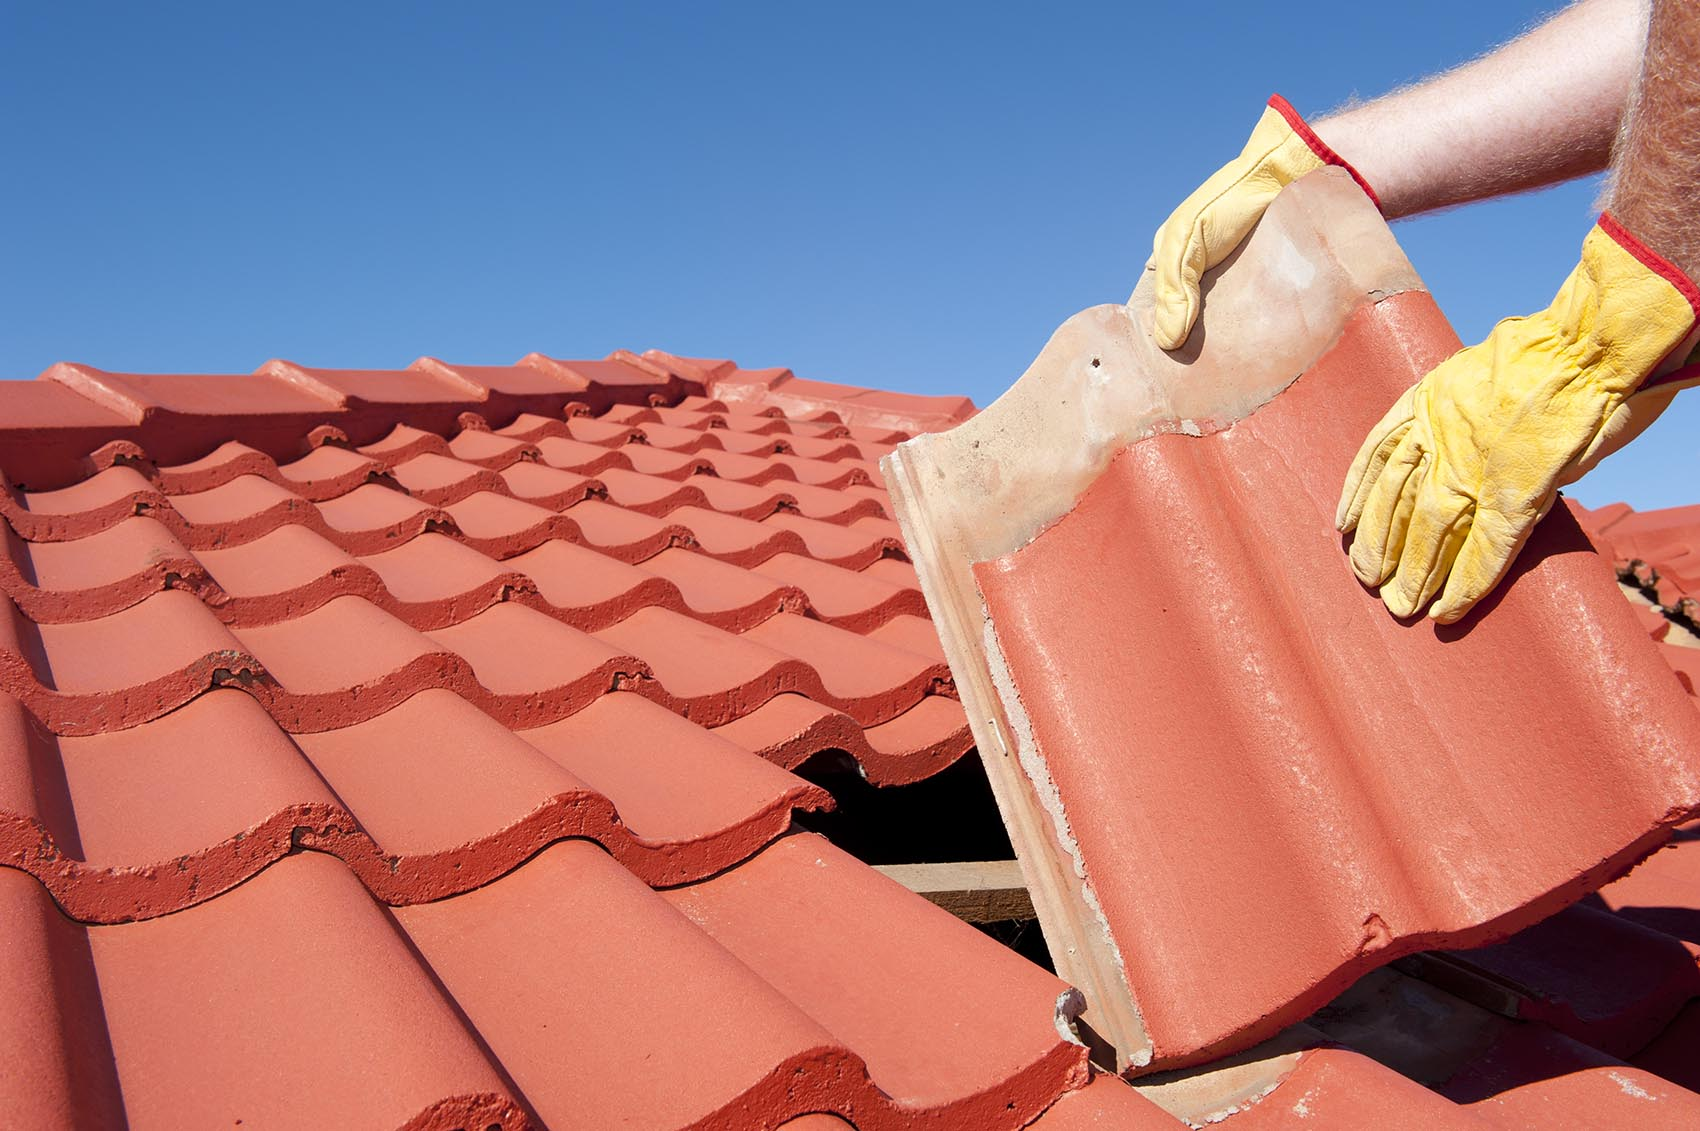 worker tile roofing repair house